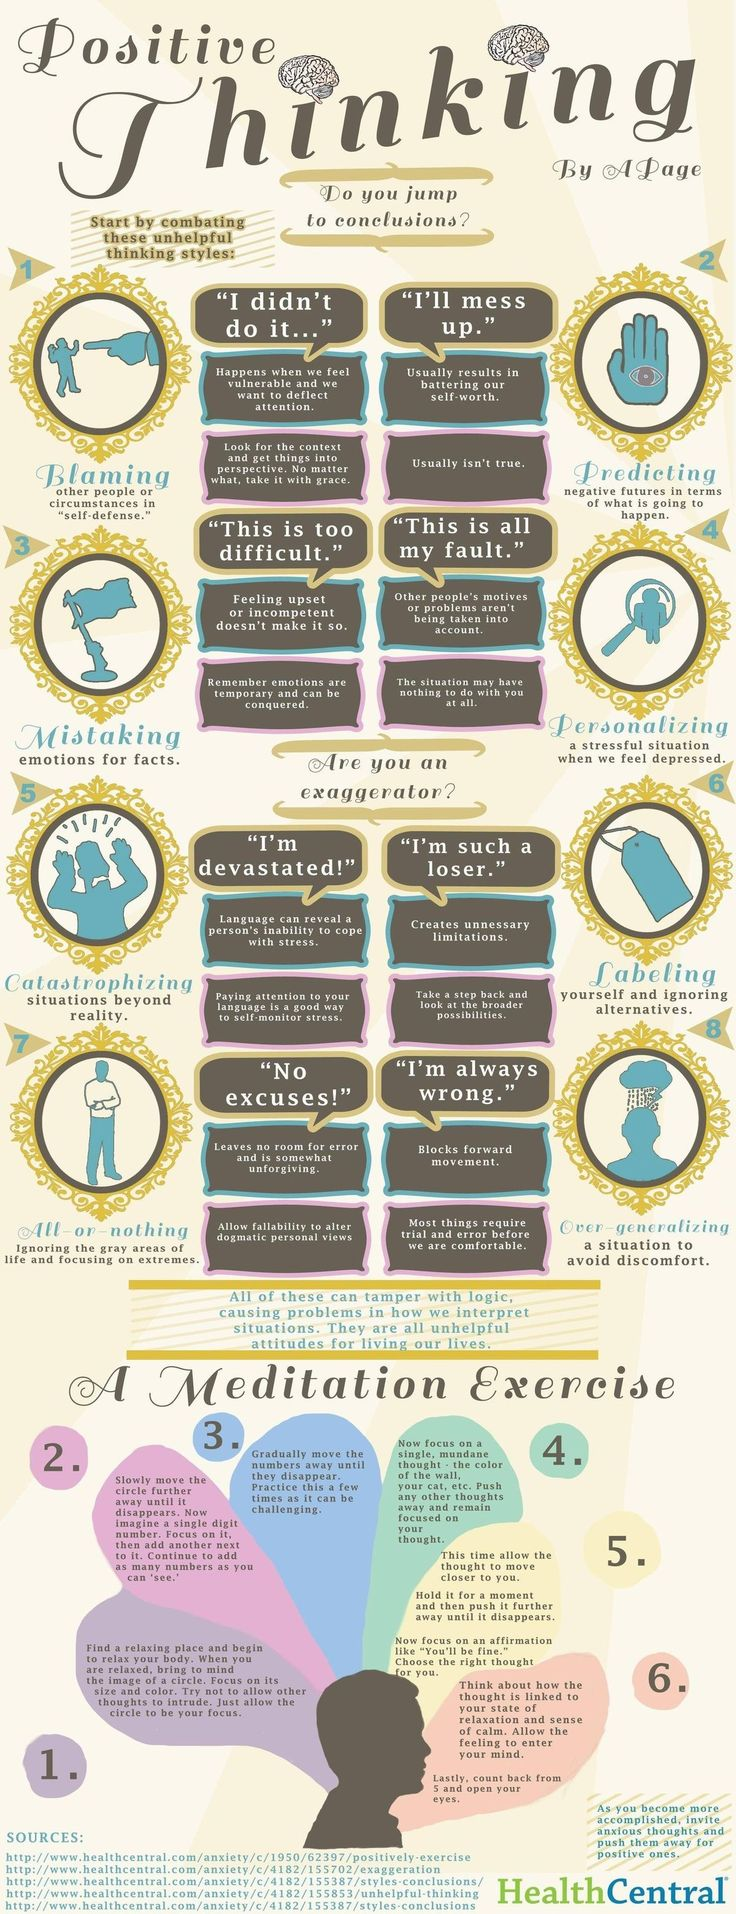 """positive quotes about life  http://www.positivewordsthatstartwith.com/     How to think positive - also includes a meditation exercise """"Positive thinking evokes more energy, more initiative & more happiness"""" #infographic...x"""